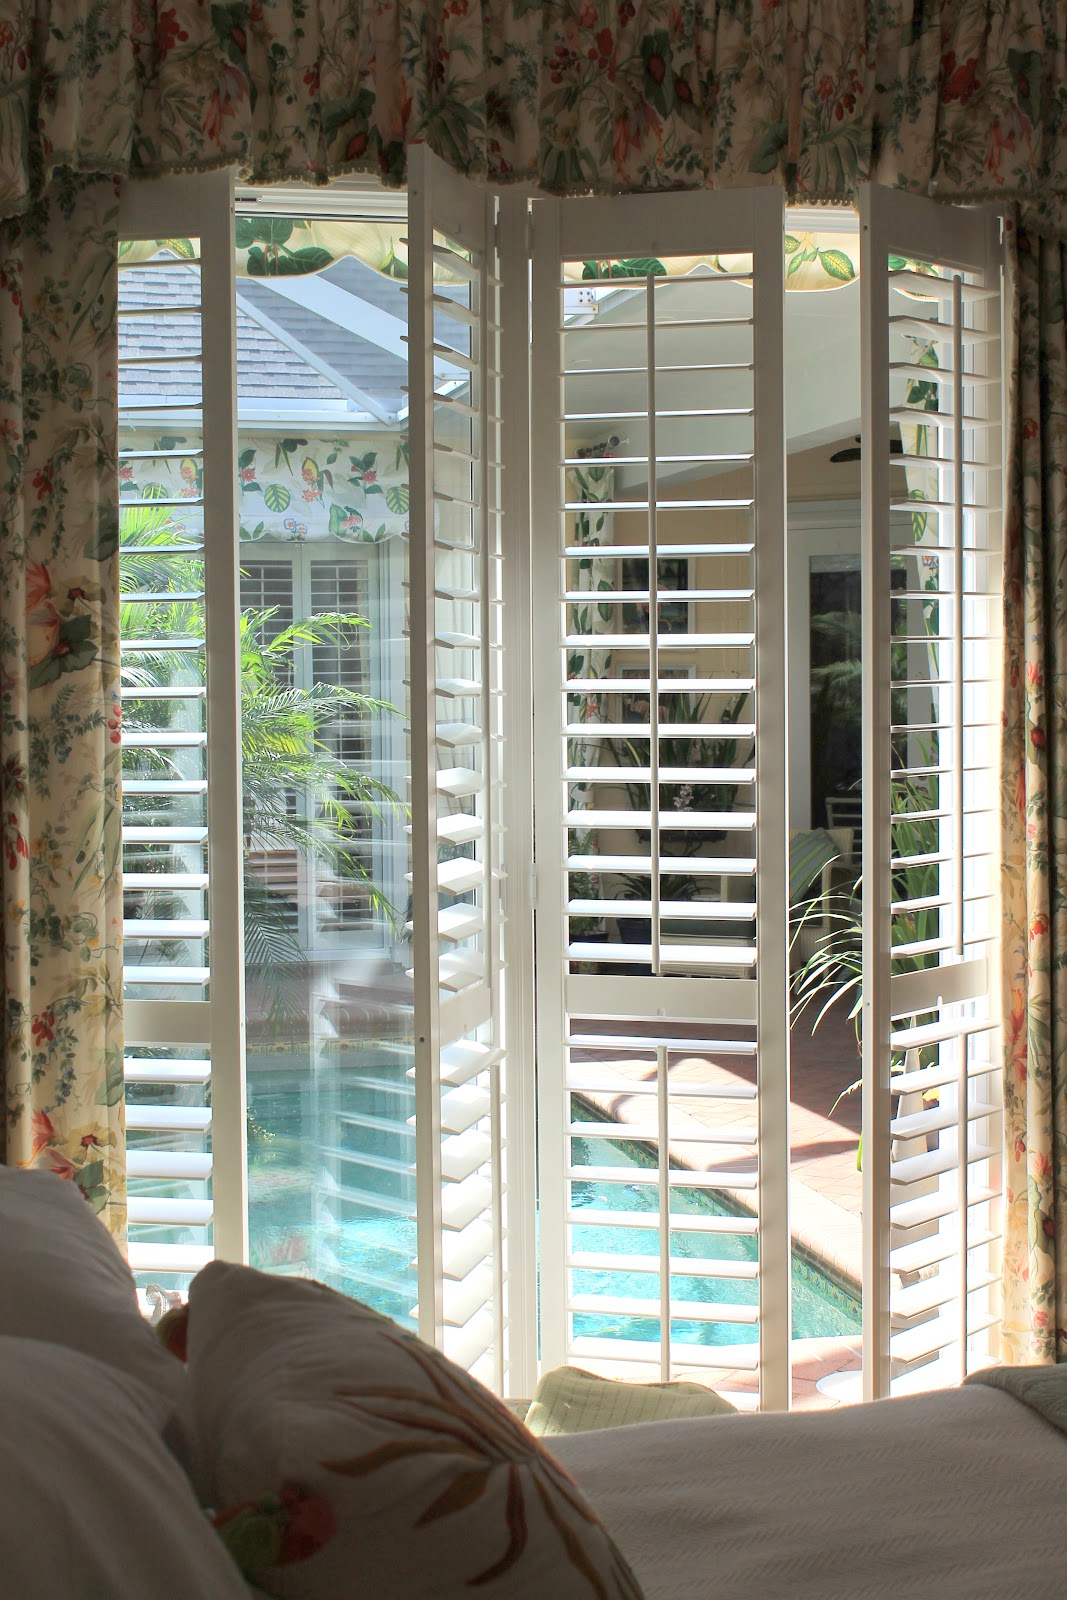 Interior shutters for sliding glass doors - Plantation Shutters On Sliders A Close Up View